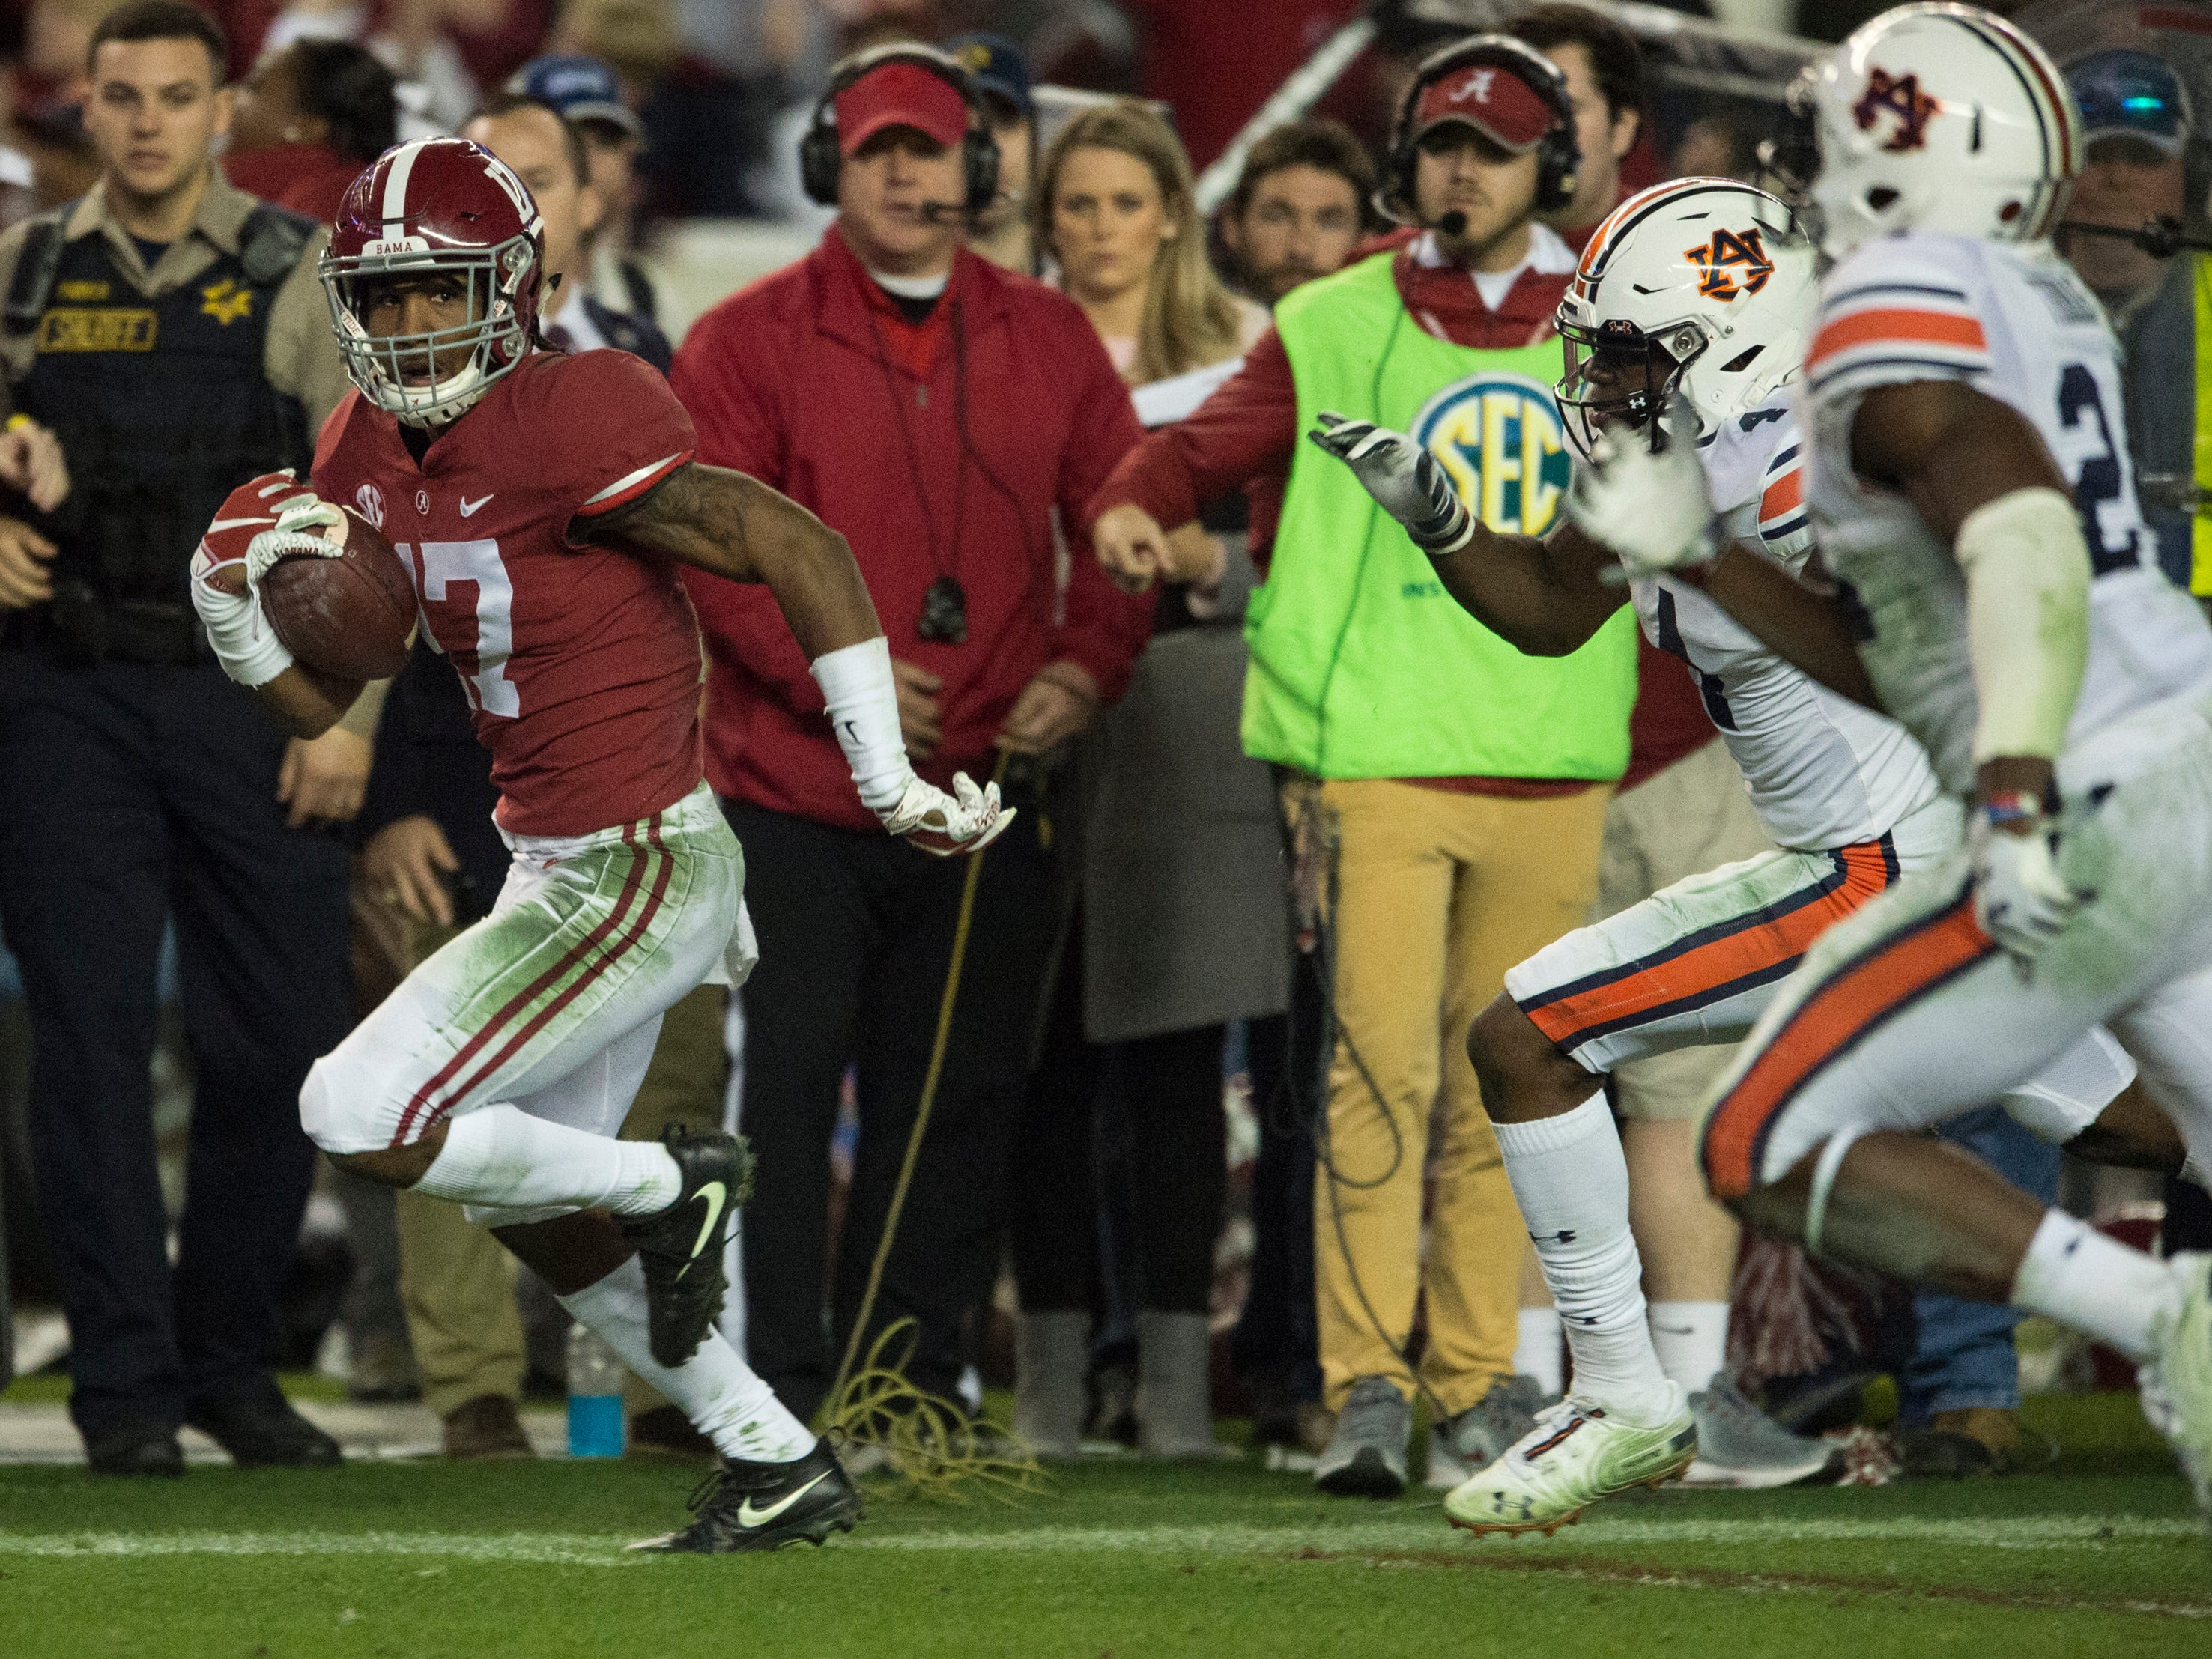 Alabama wide receiver Jaylen Waddle (17) runs down the sideline to score a touchdown during the Iron Bowl at Bryant-Denny Stadium in Tuscaloosa, Ala., on Saturday, Nov. 24, 2018. Alabama defeated Auburn 52-21.